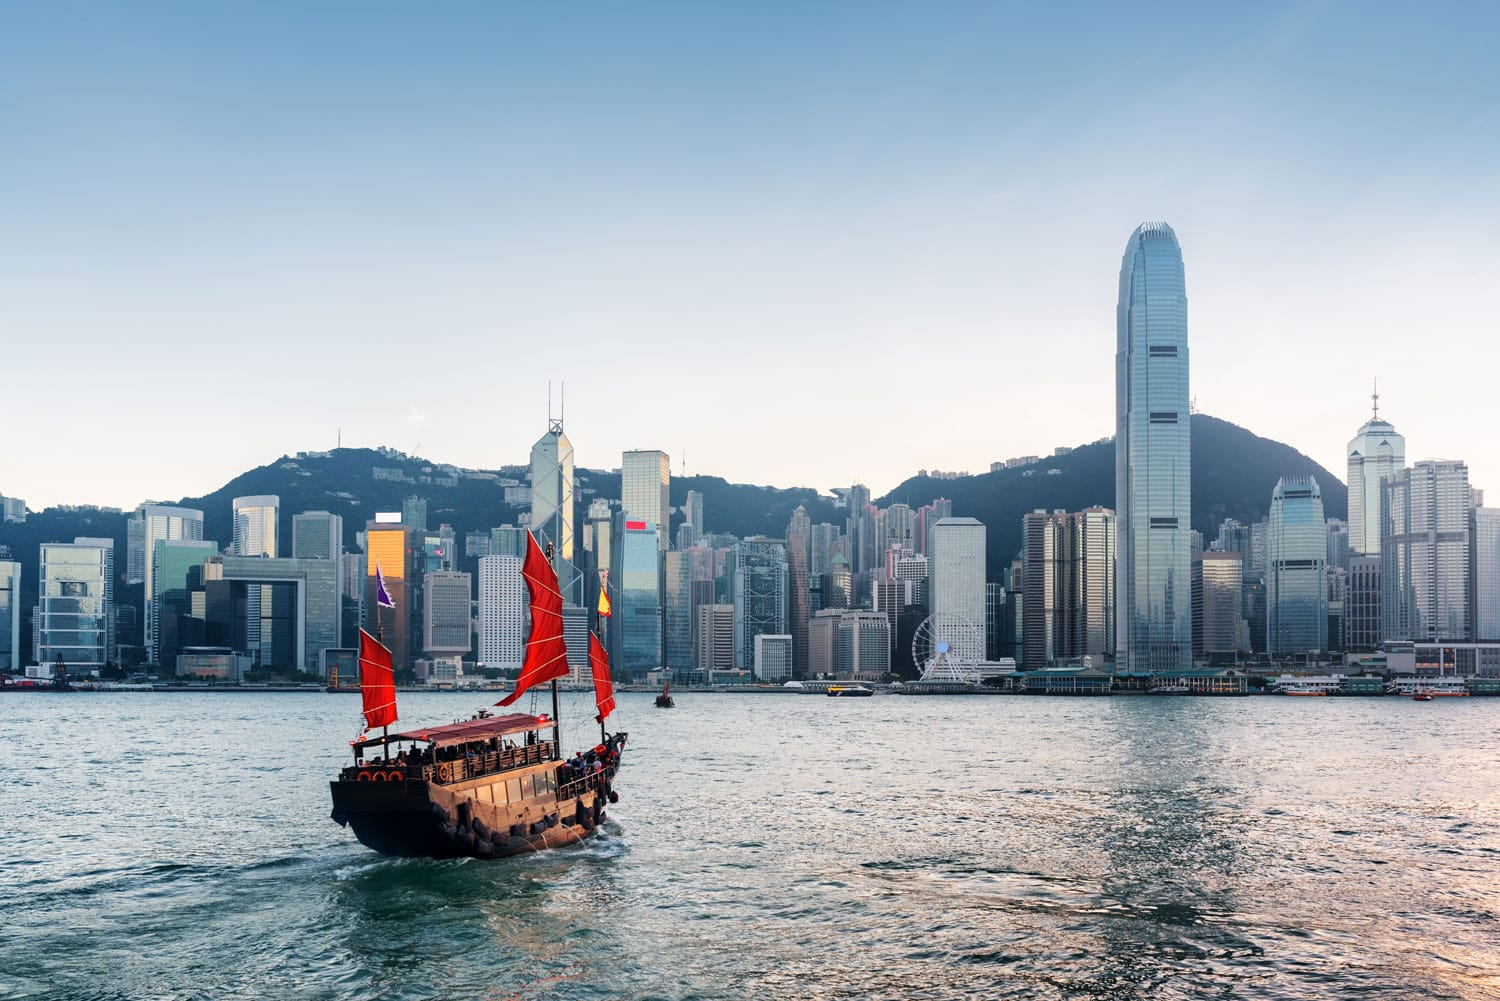 Tourist sailboat crosses Victoria harbor from Kowloon side to the Hong Kong Island